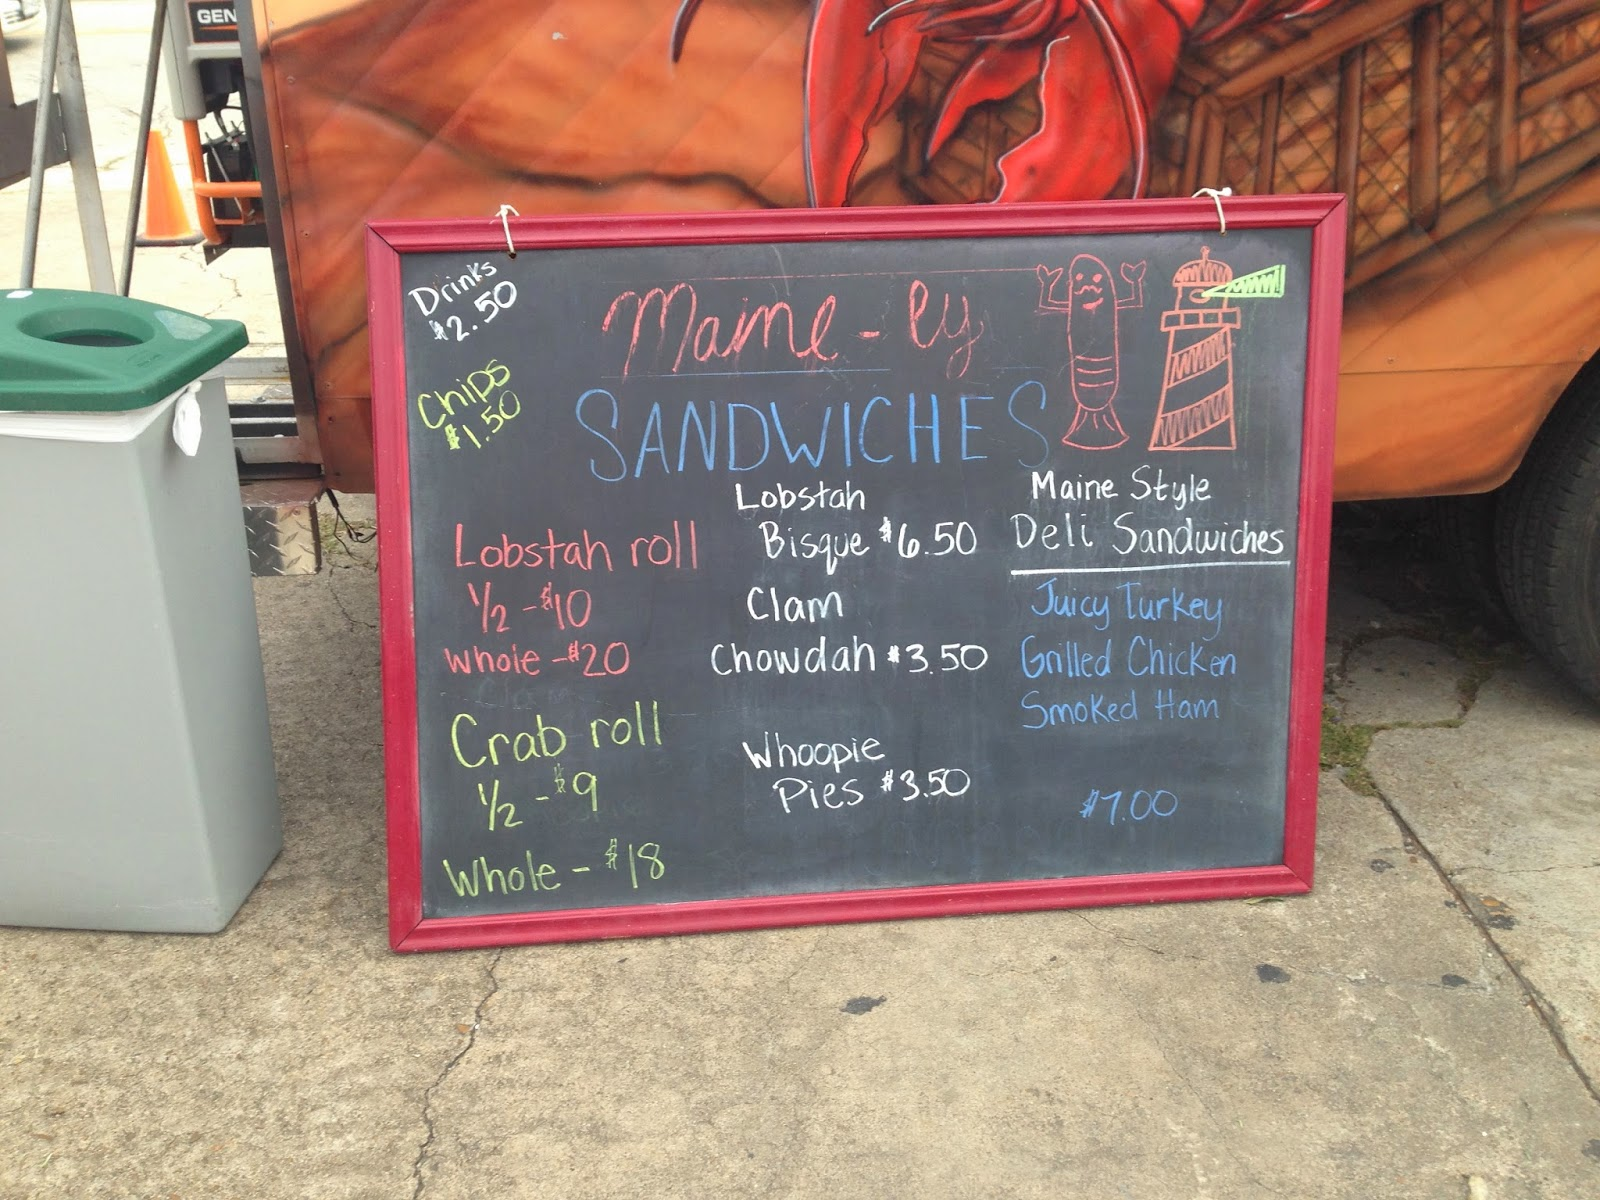 Maine-ly Sandwiches Houston Food Truck Menu